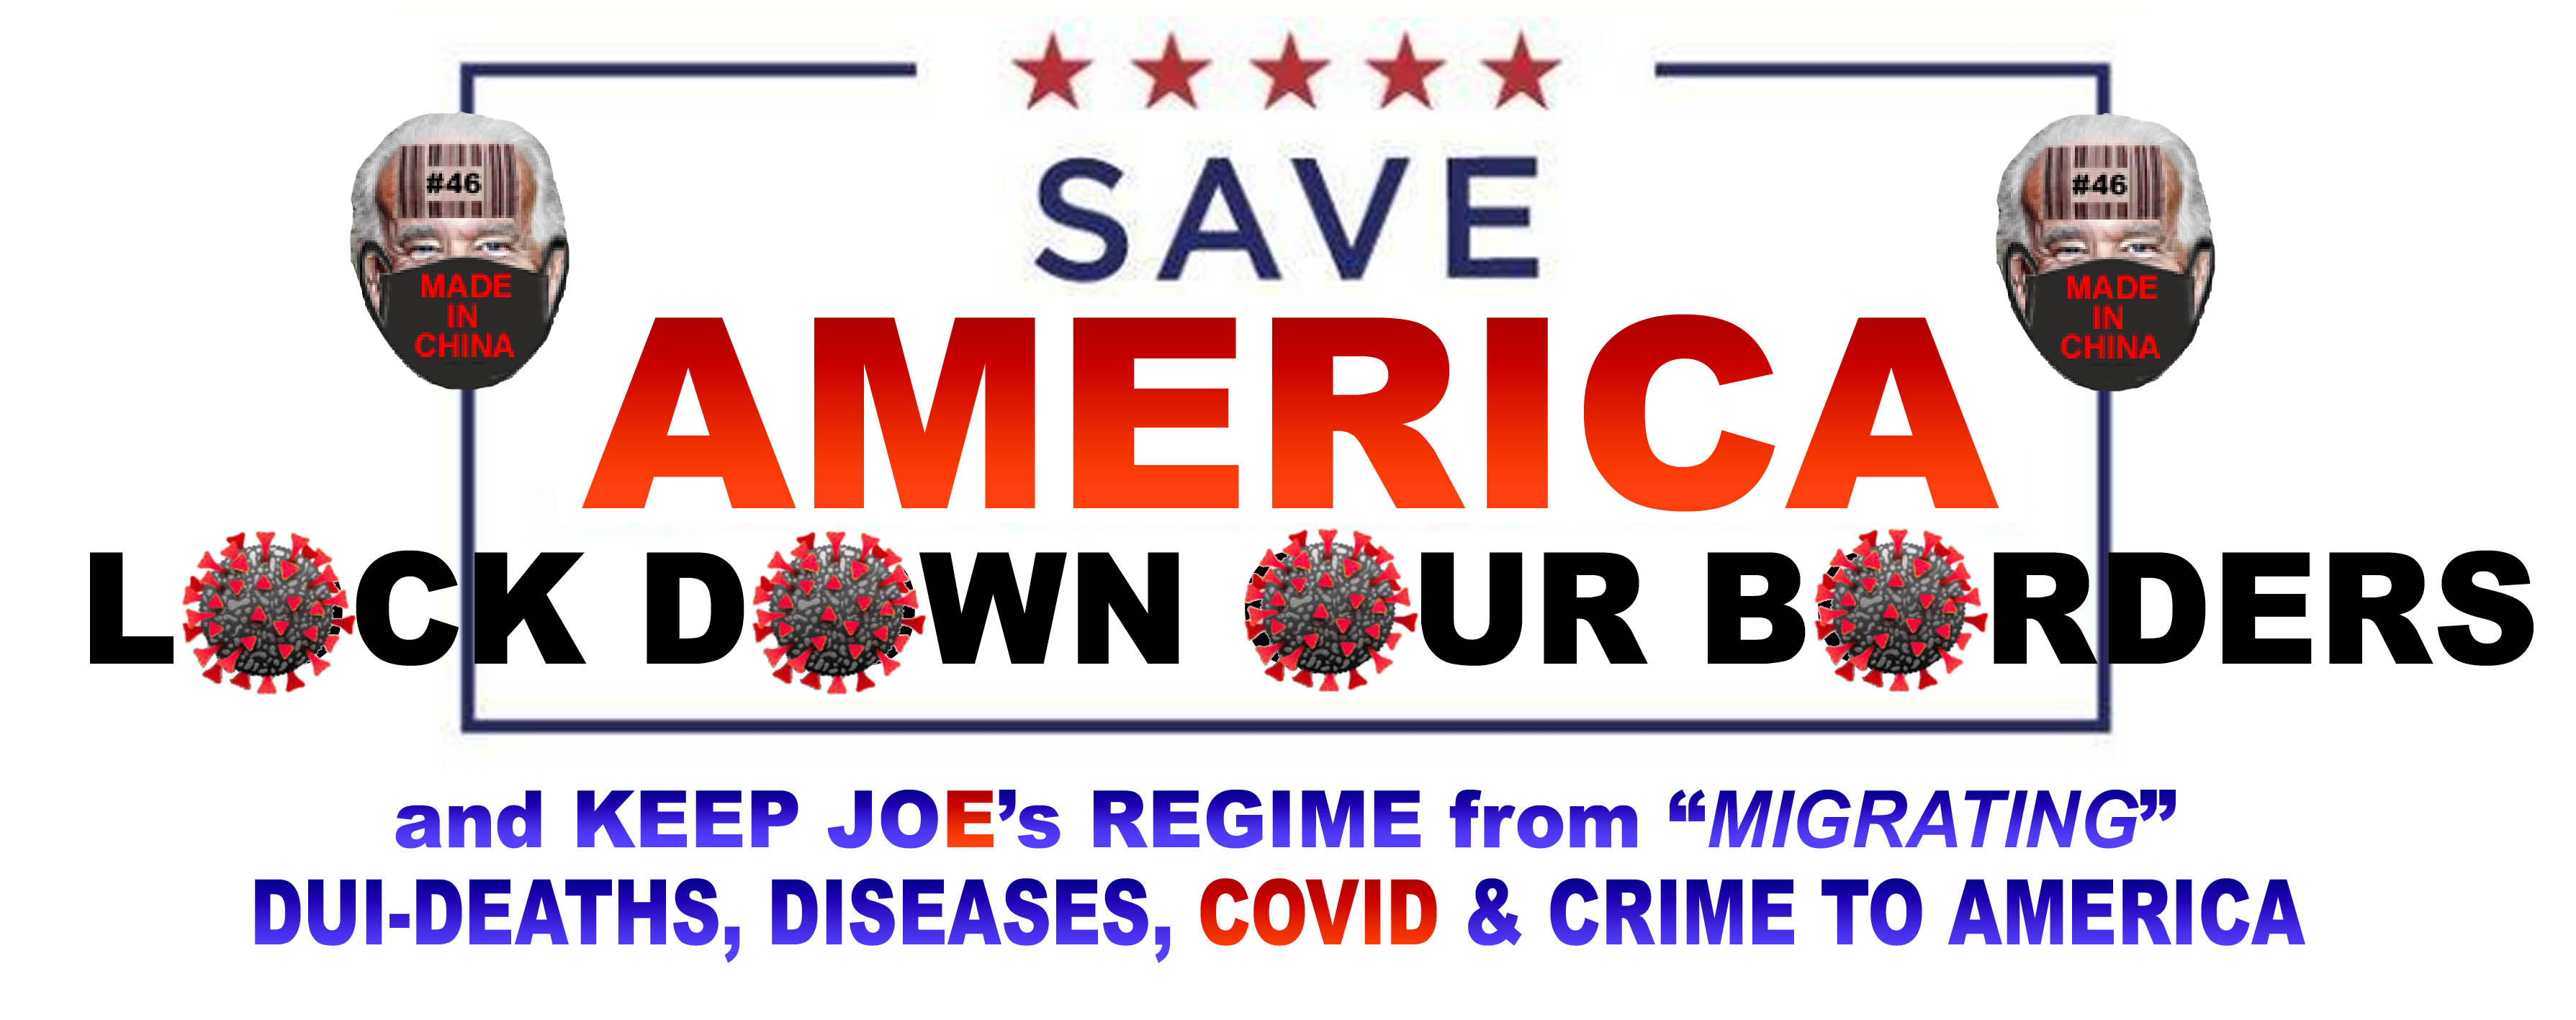 SAVE AMERICA - LOCK DOWN OUR BORDERS - AND KEEP JOE FROM MIGRATING COVID -  4 X 11 - JPEG.jpg